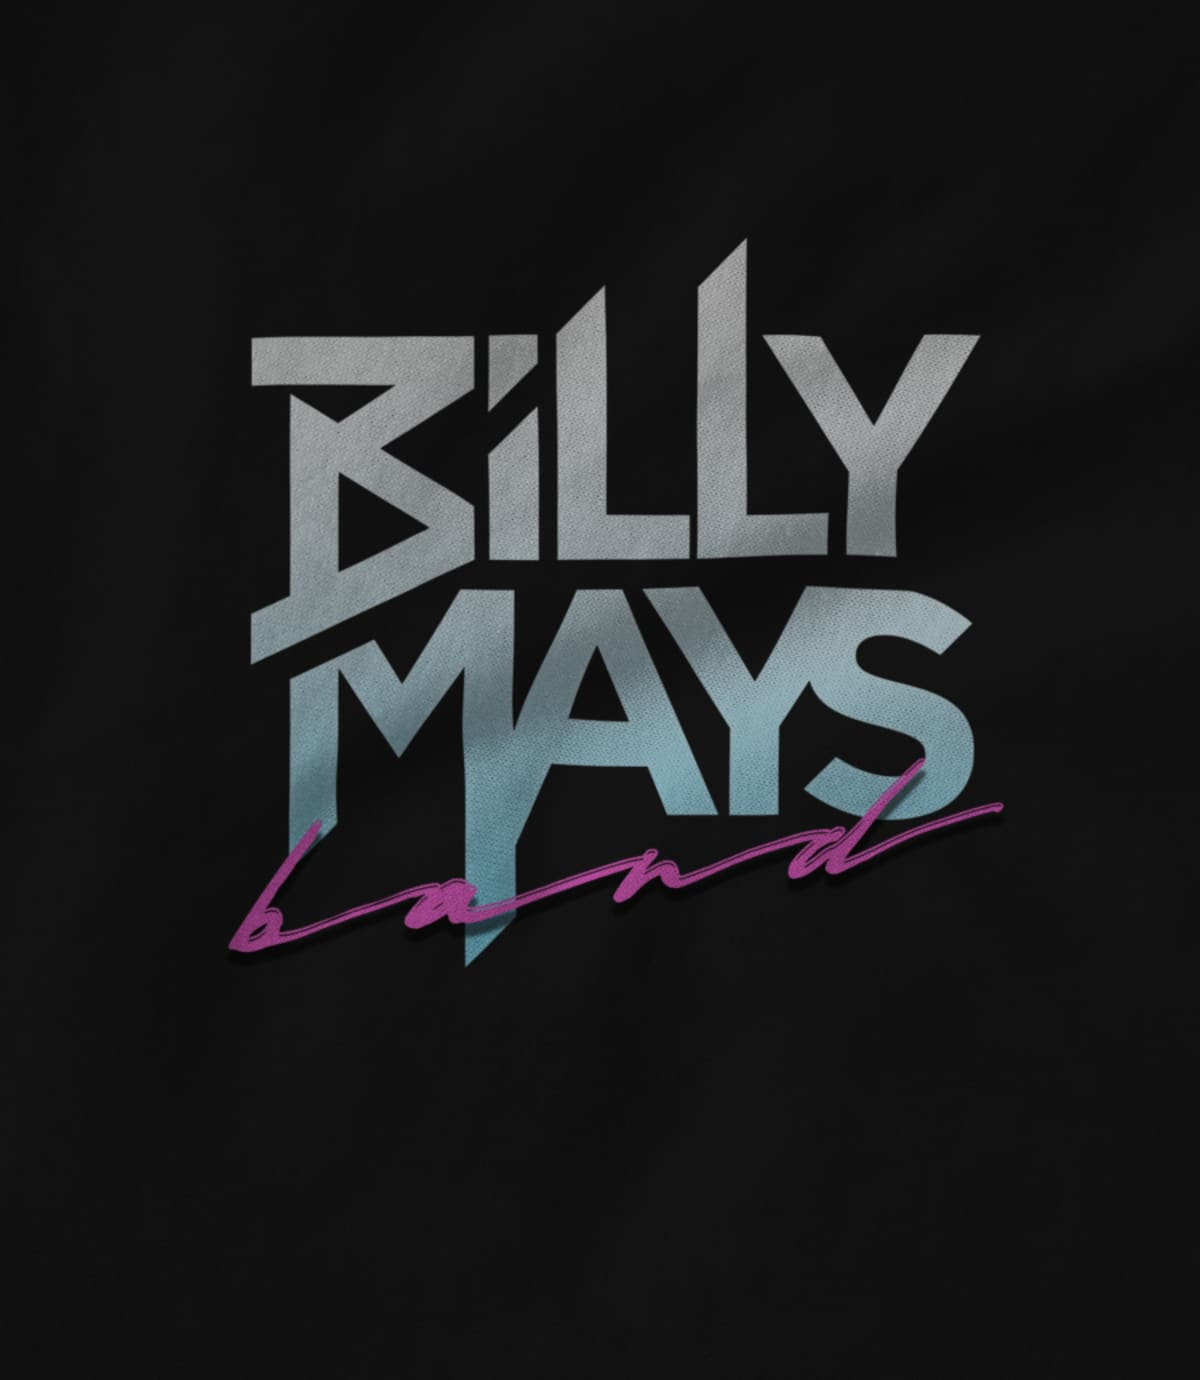 Billy mays band bmb logo 02 1568833428